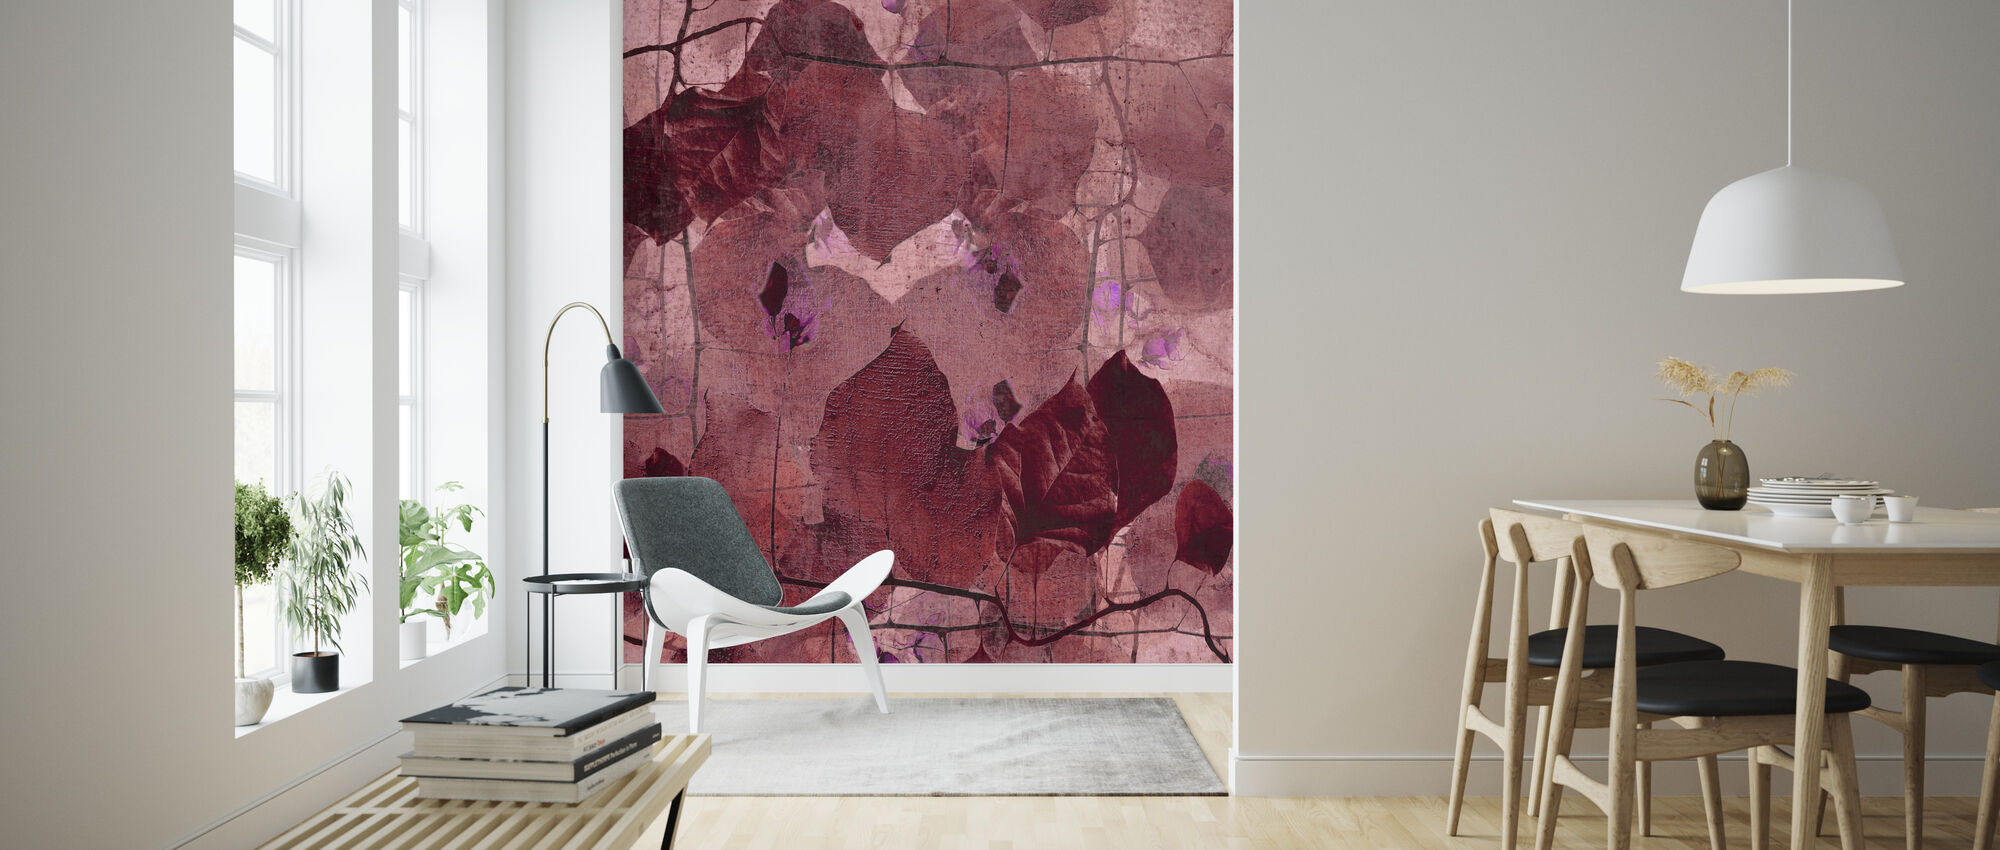 Bordeaux Grapevine - Wallpaper - Living Room